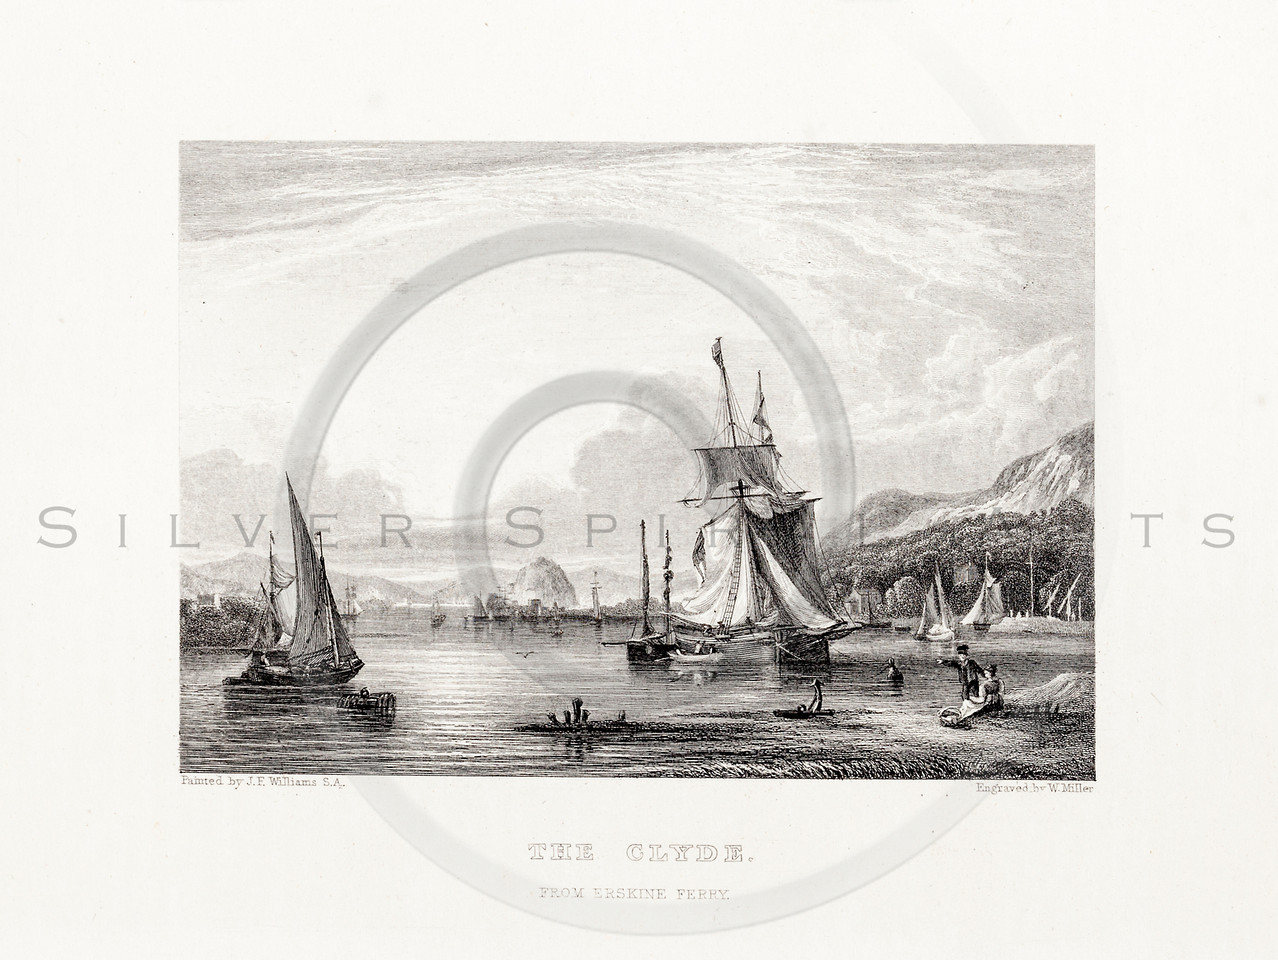 Vintage 1800s Sepia Steel Engraving Illustration of a Port with Ships from THE LIBRARY OF CHOICE LITERATURE by Ainsworth Spofford.  The natural patina, age-toning, imperfections, and old paper antiquing of this vintage 19th century illustration are preserved in this image.